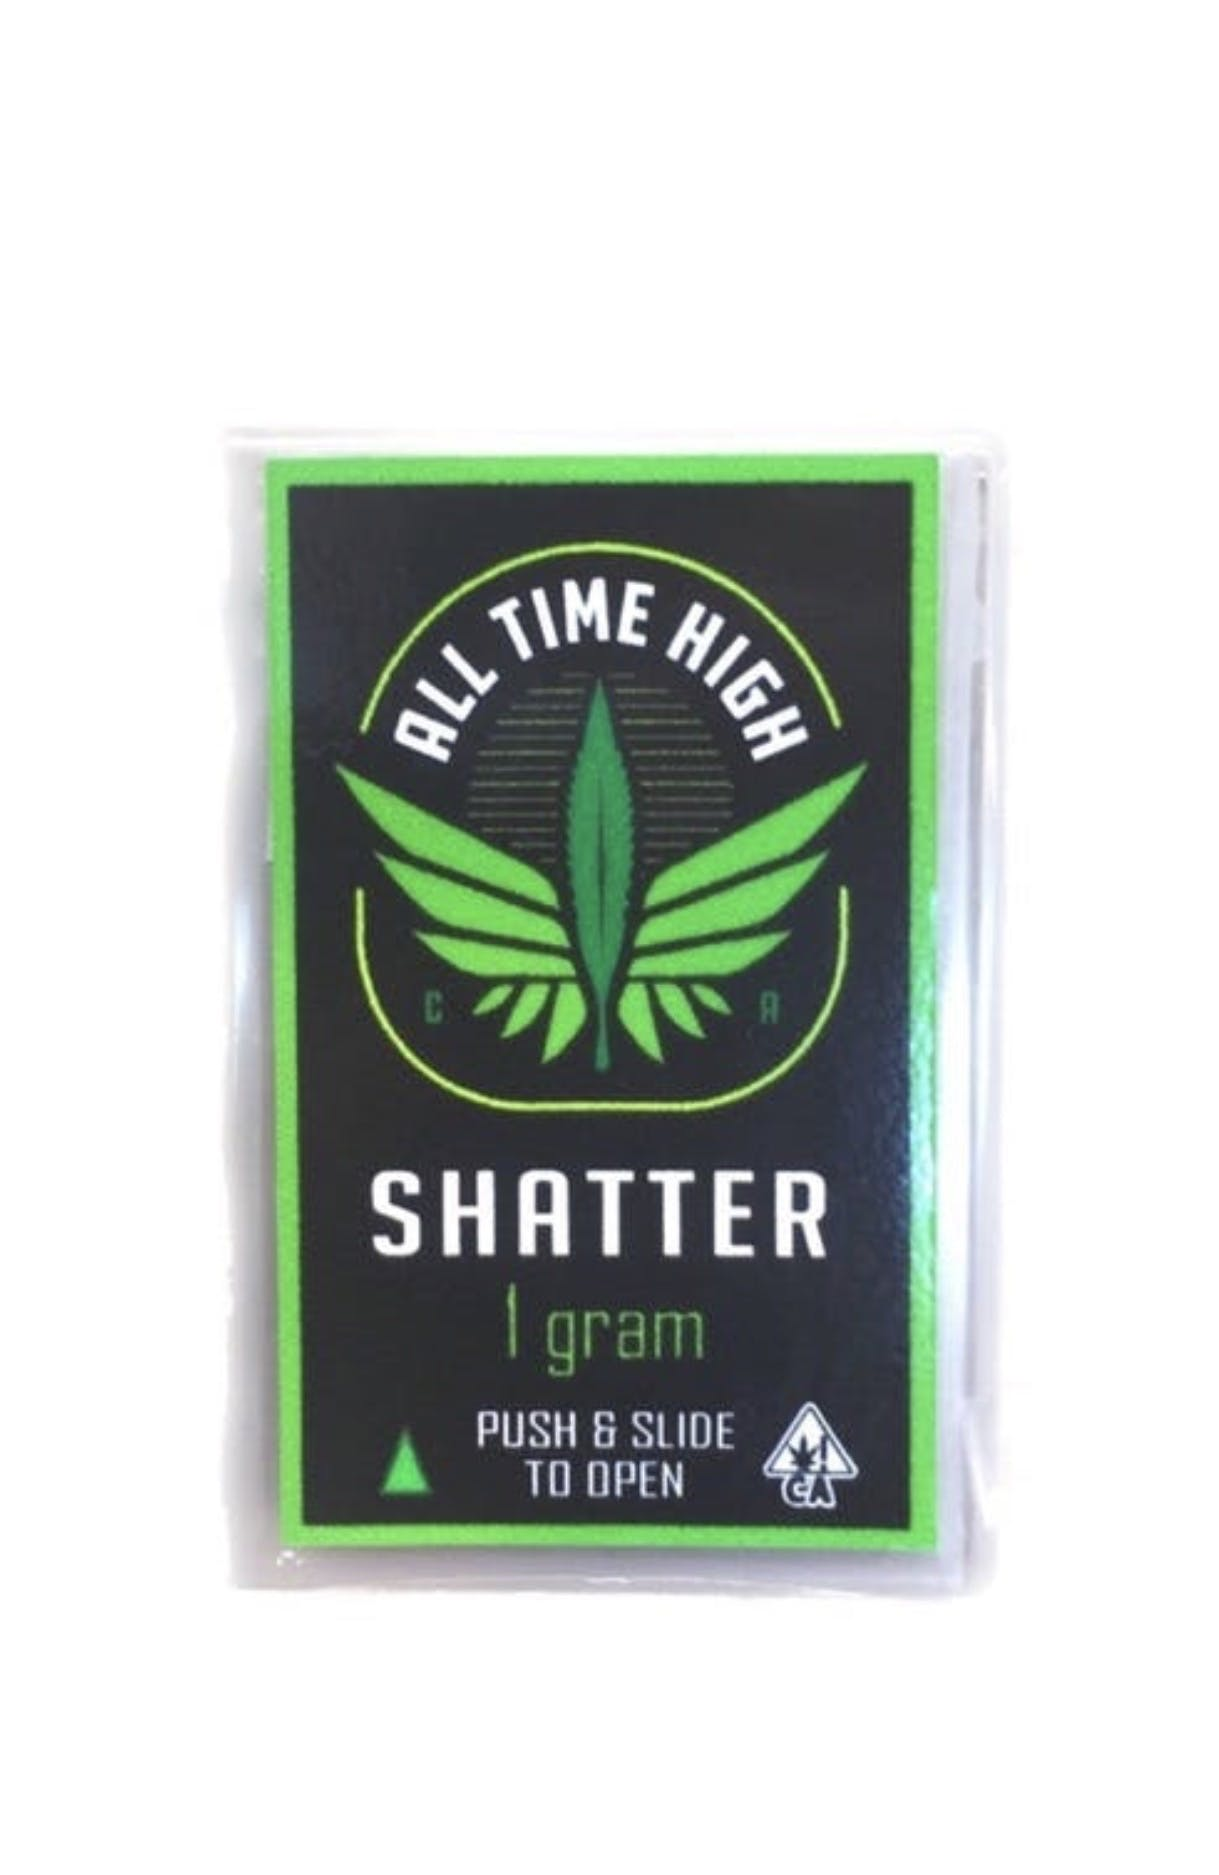 concentrate-all-time-high-shatter-5-for-100